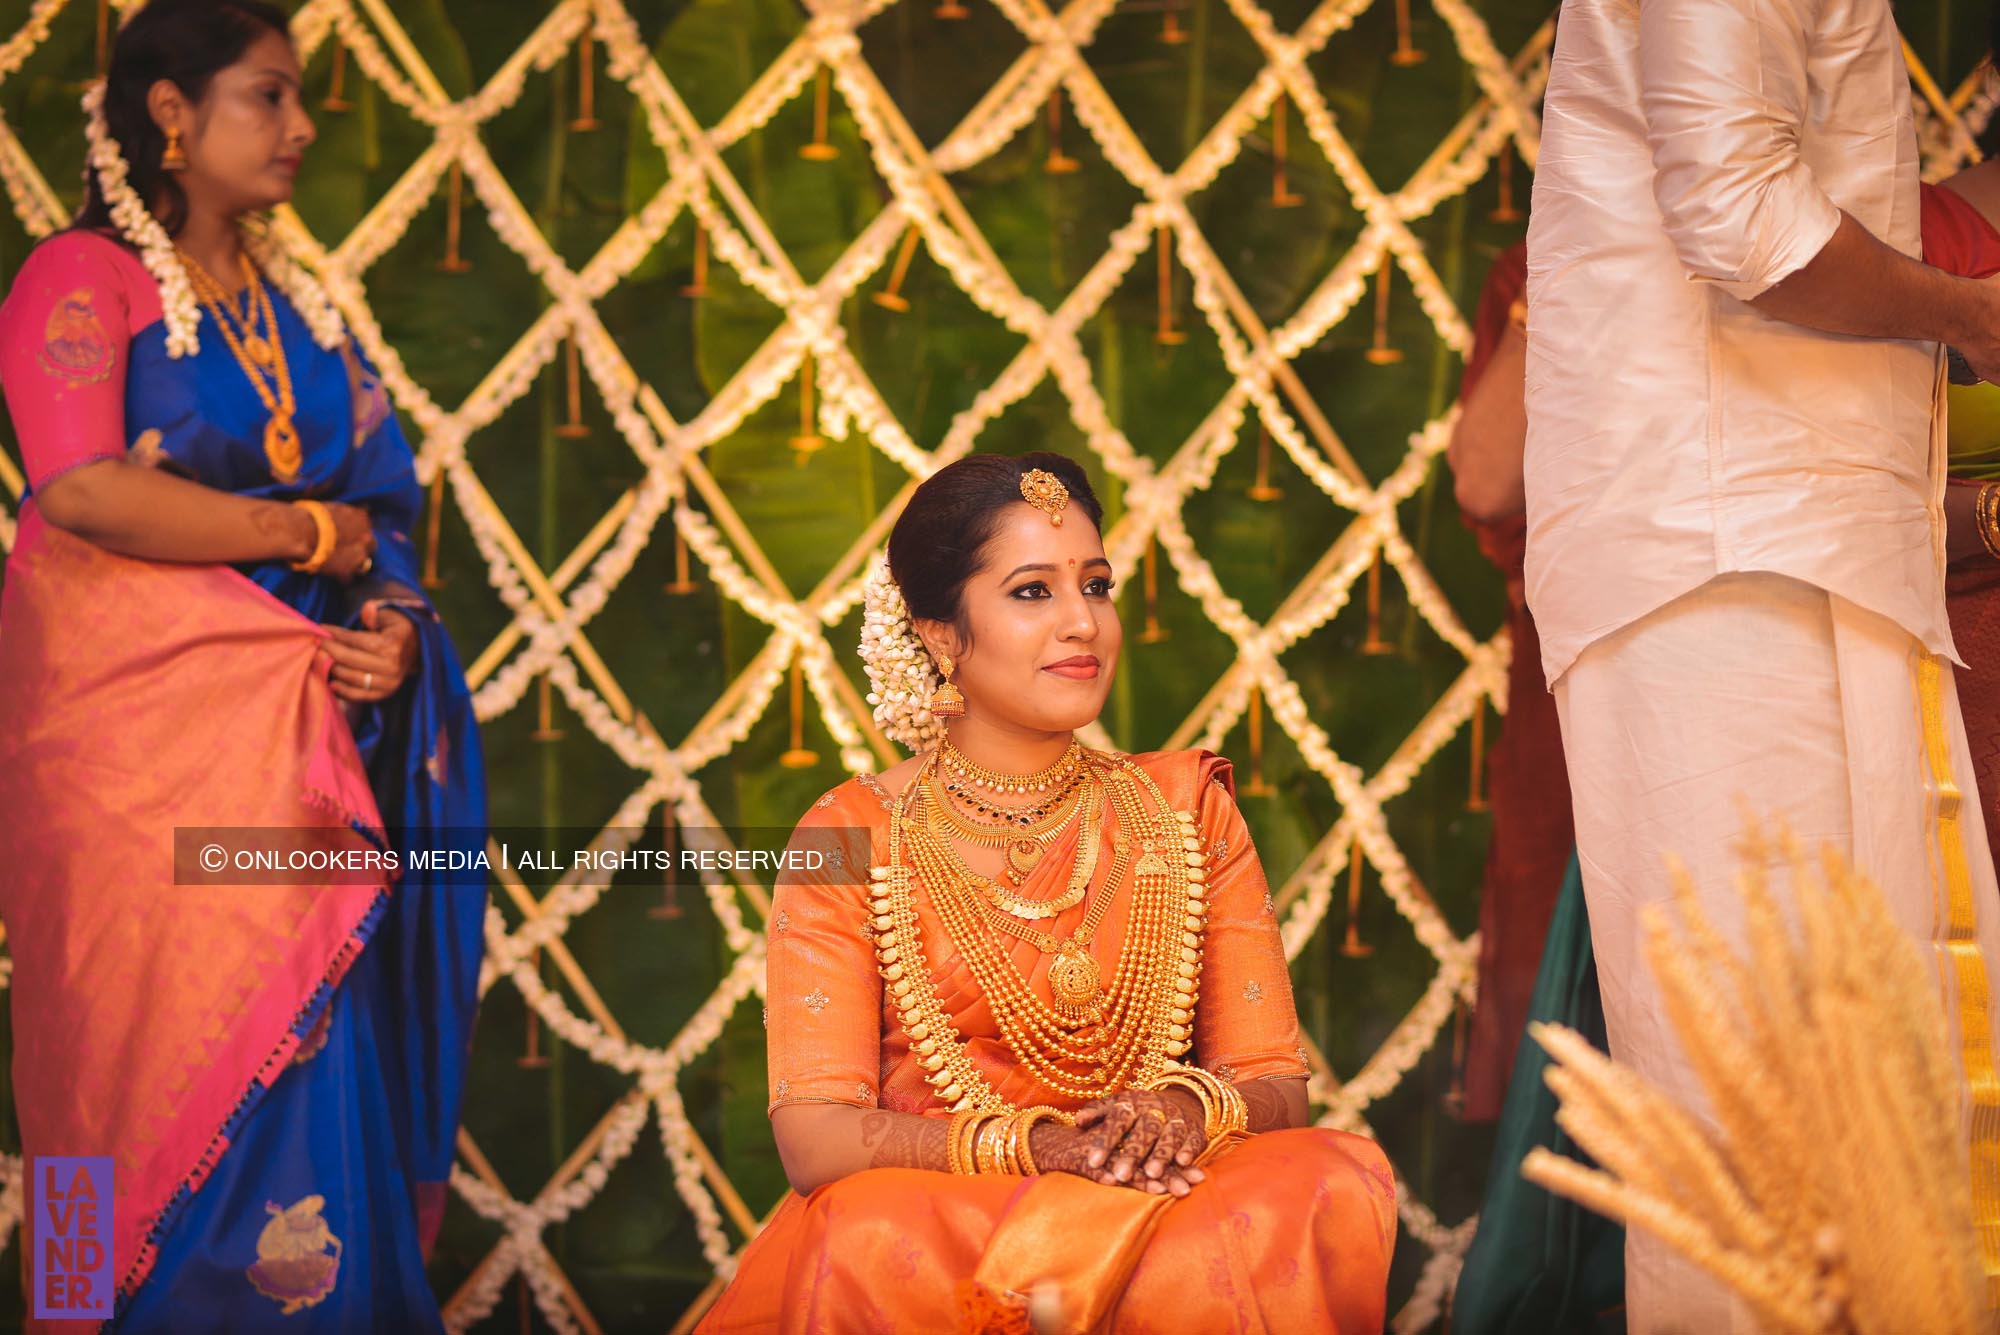 http://onlookersmedia.in/wp-content/uploads/2018/05/sreejith-vijay-wedding-stills-images-42.jpg